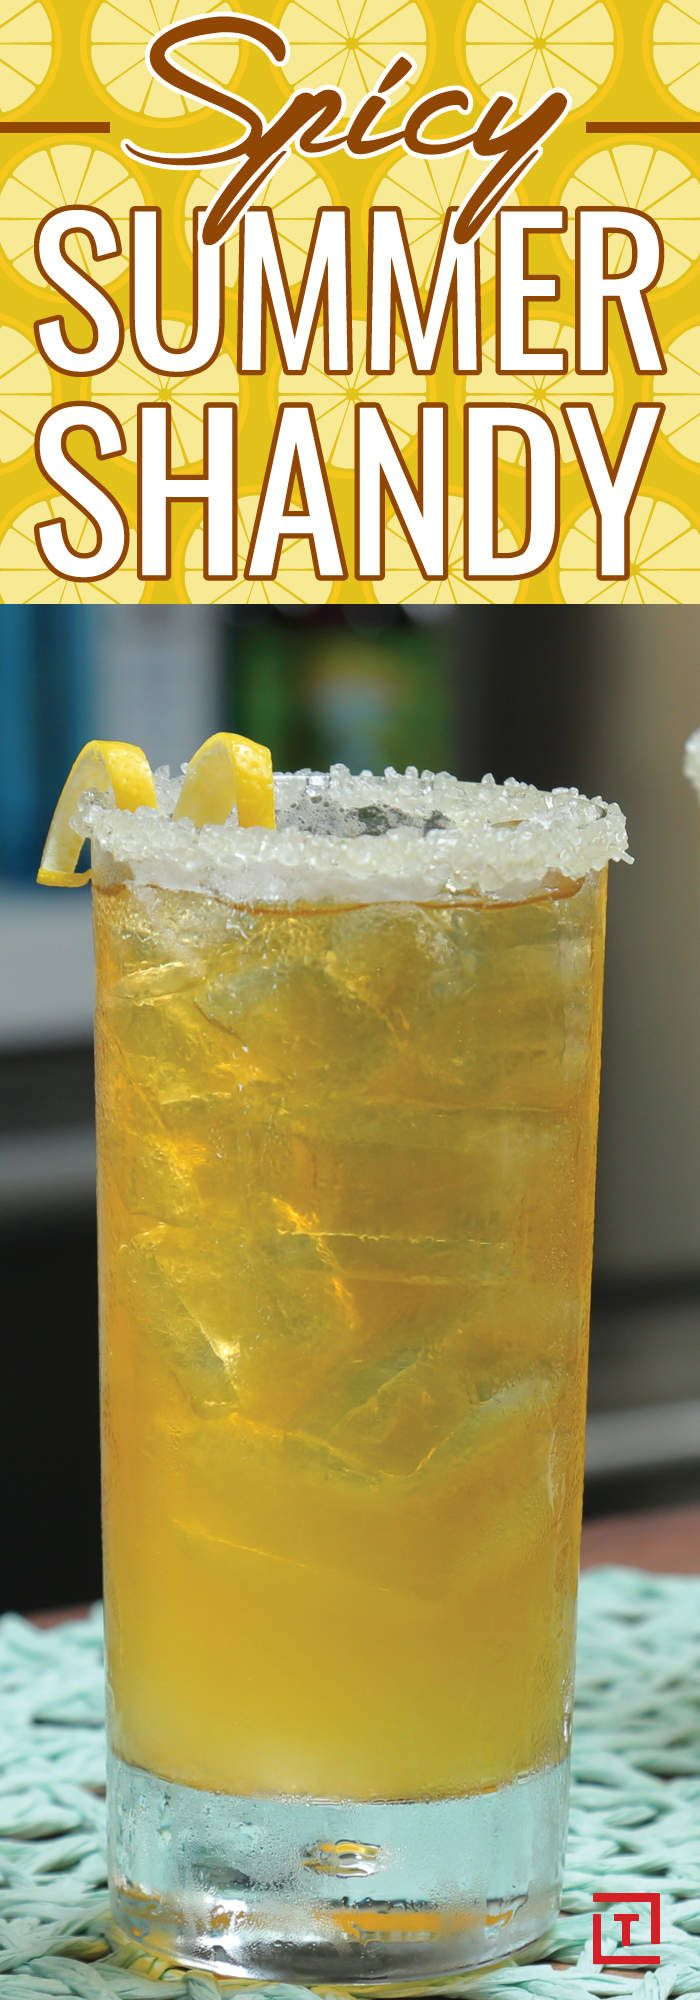 Make This Spicy Summer Shandy Before Summer's End 1 1/2 oz gin 1 oz fresh lemon juice pale ale honey and salt rim 1/2 oz jalapeño honey syrup: 1 cup water 1 cup honey 1 jalapeno pepper, thinly sliced